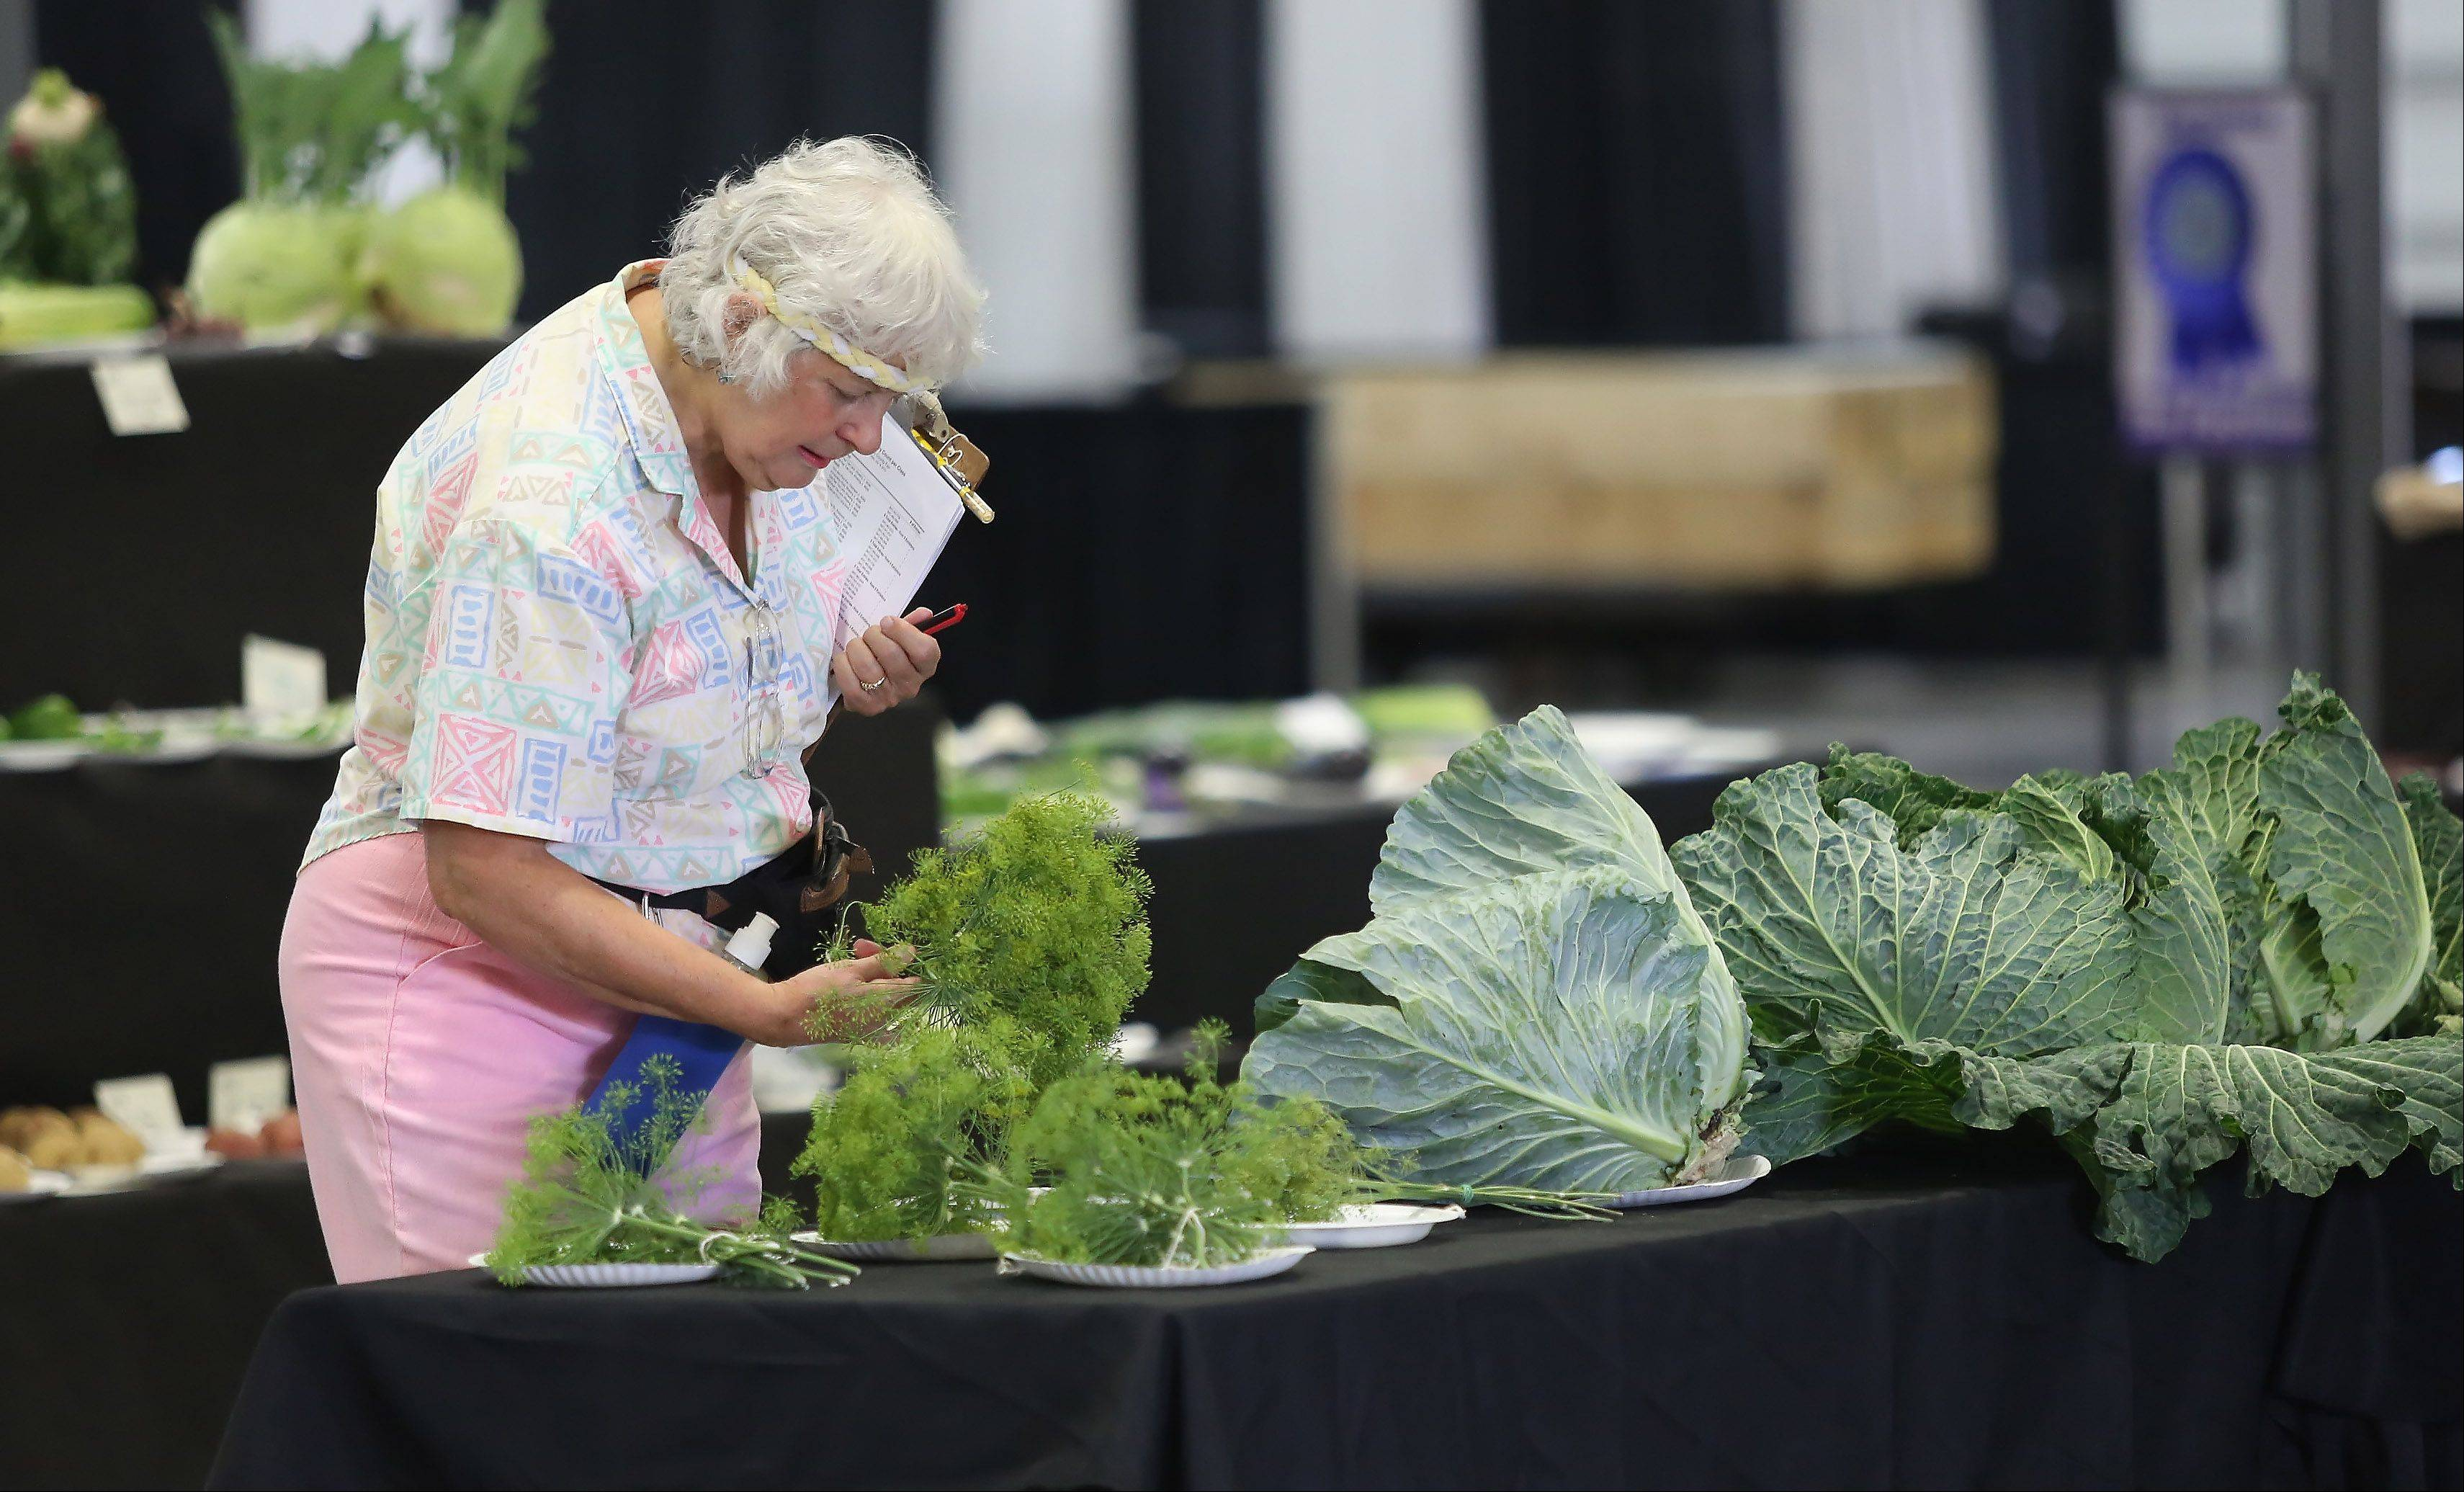 Nancy Neckermann of Antioch inspects vegetables Tuesday at the Lake County Fair in Grayslake.